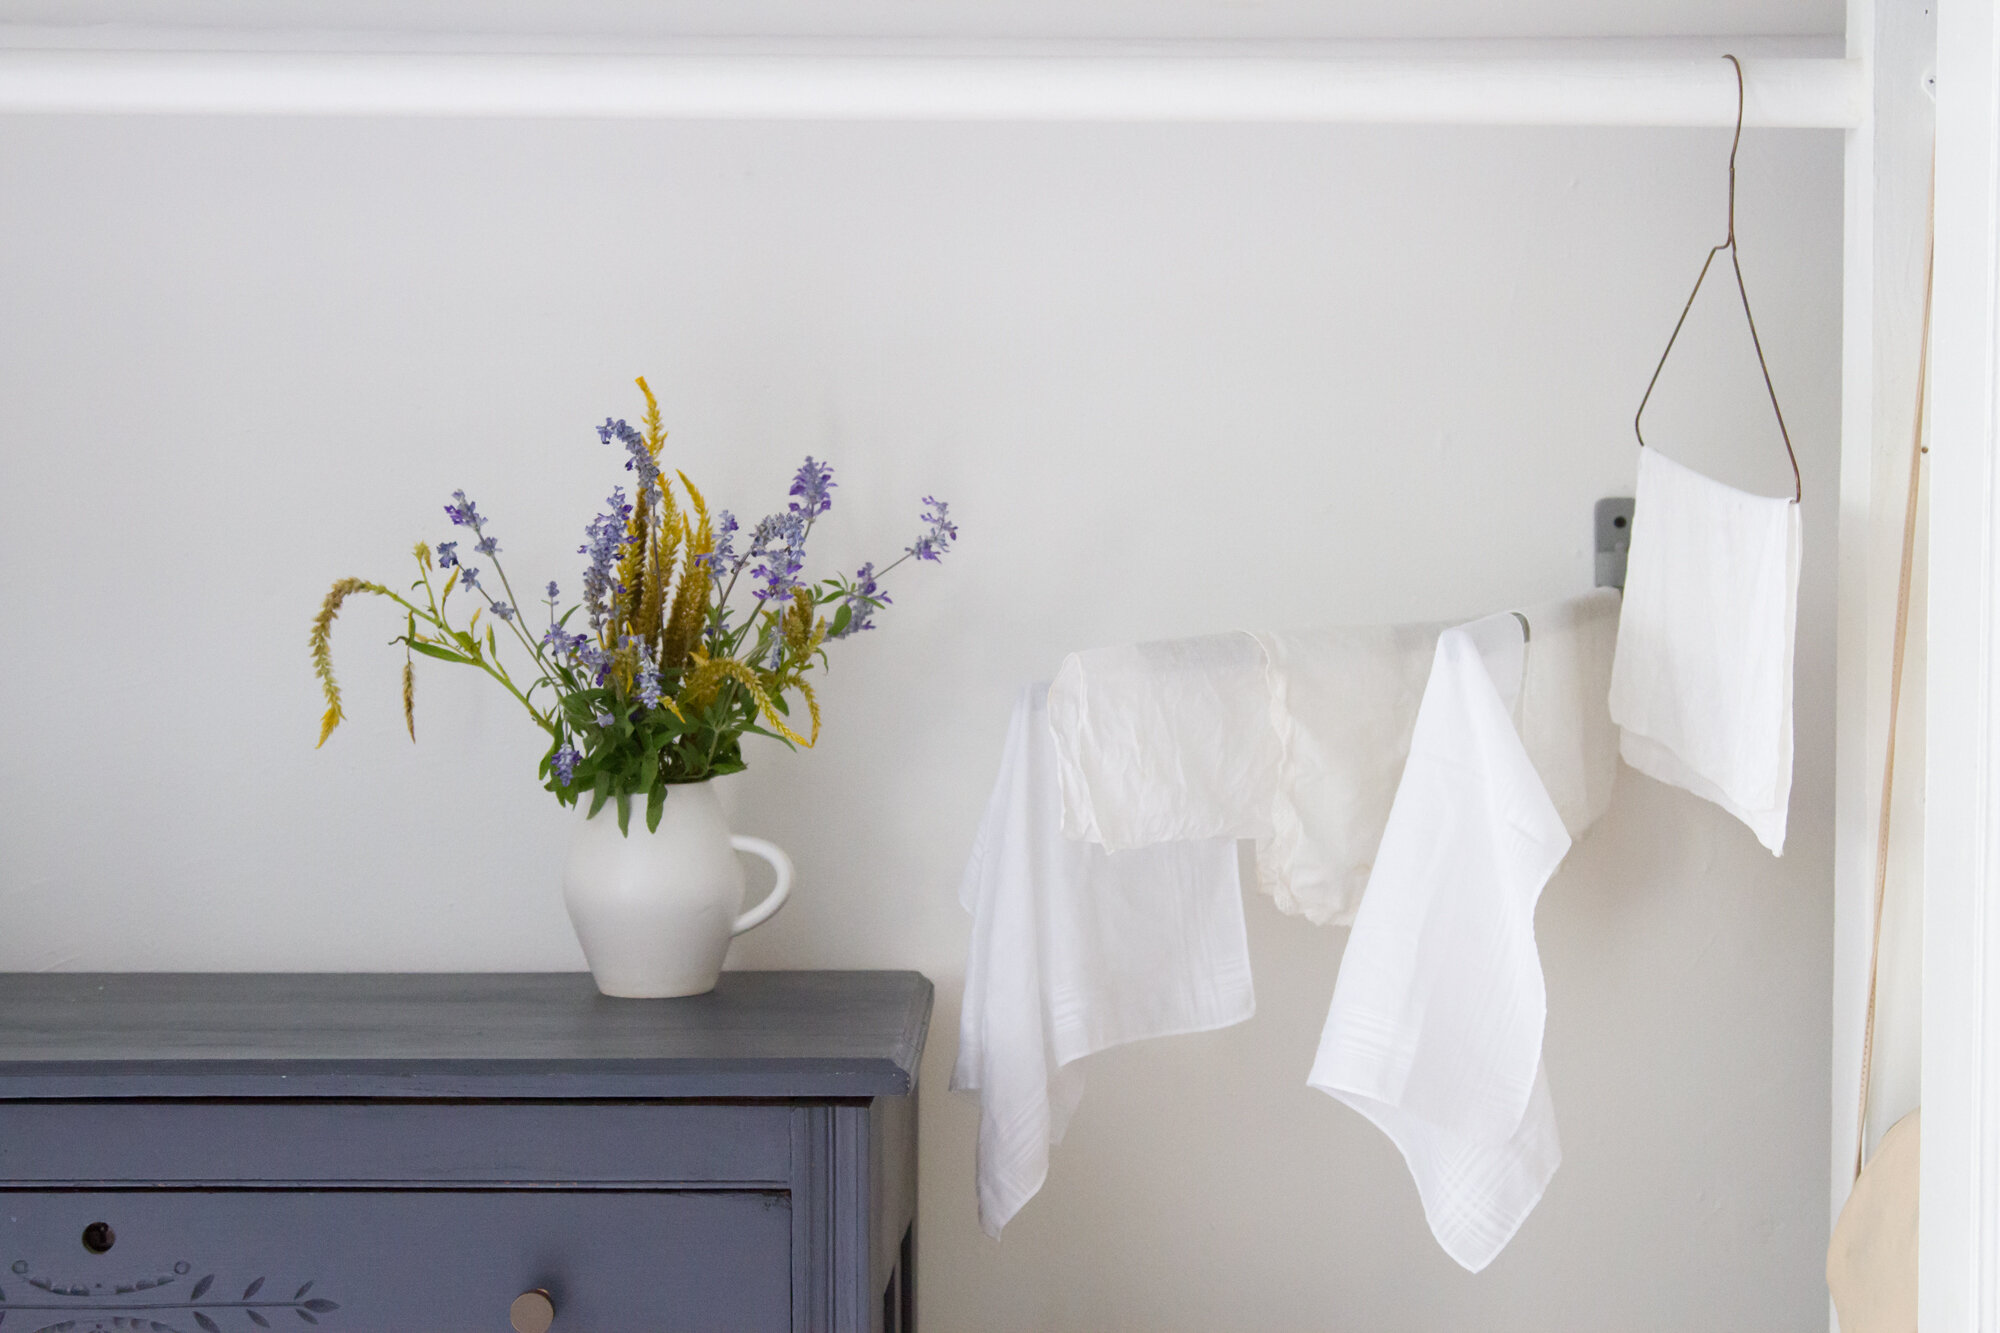 small space projects | reading my tea leaves